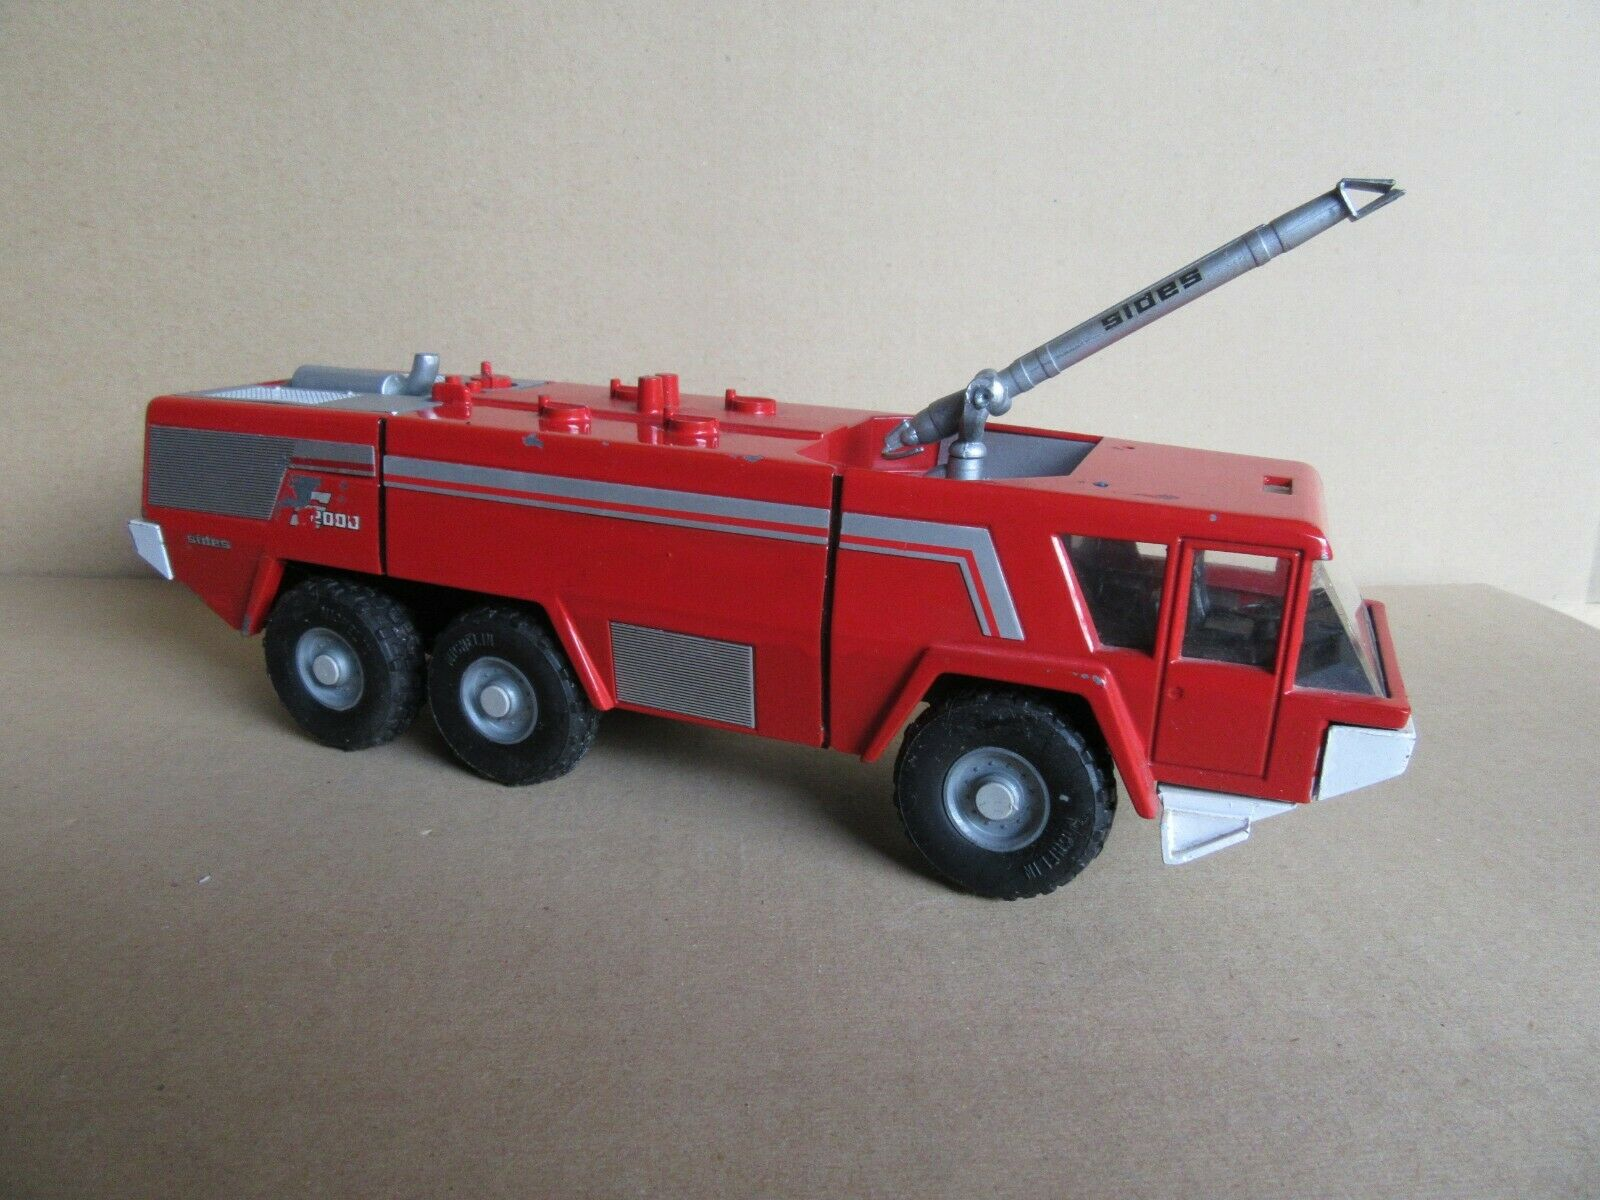 628K Raro Sides S2000 Truck of Firecombatientes Airport 1 43